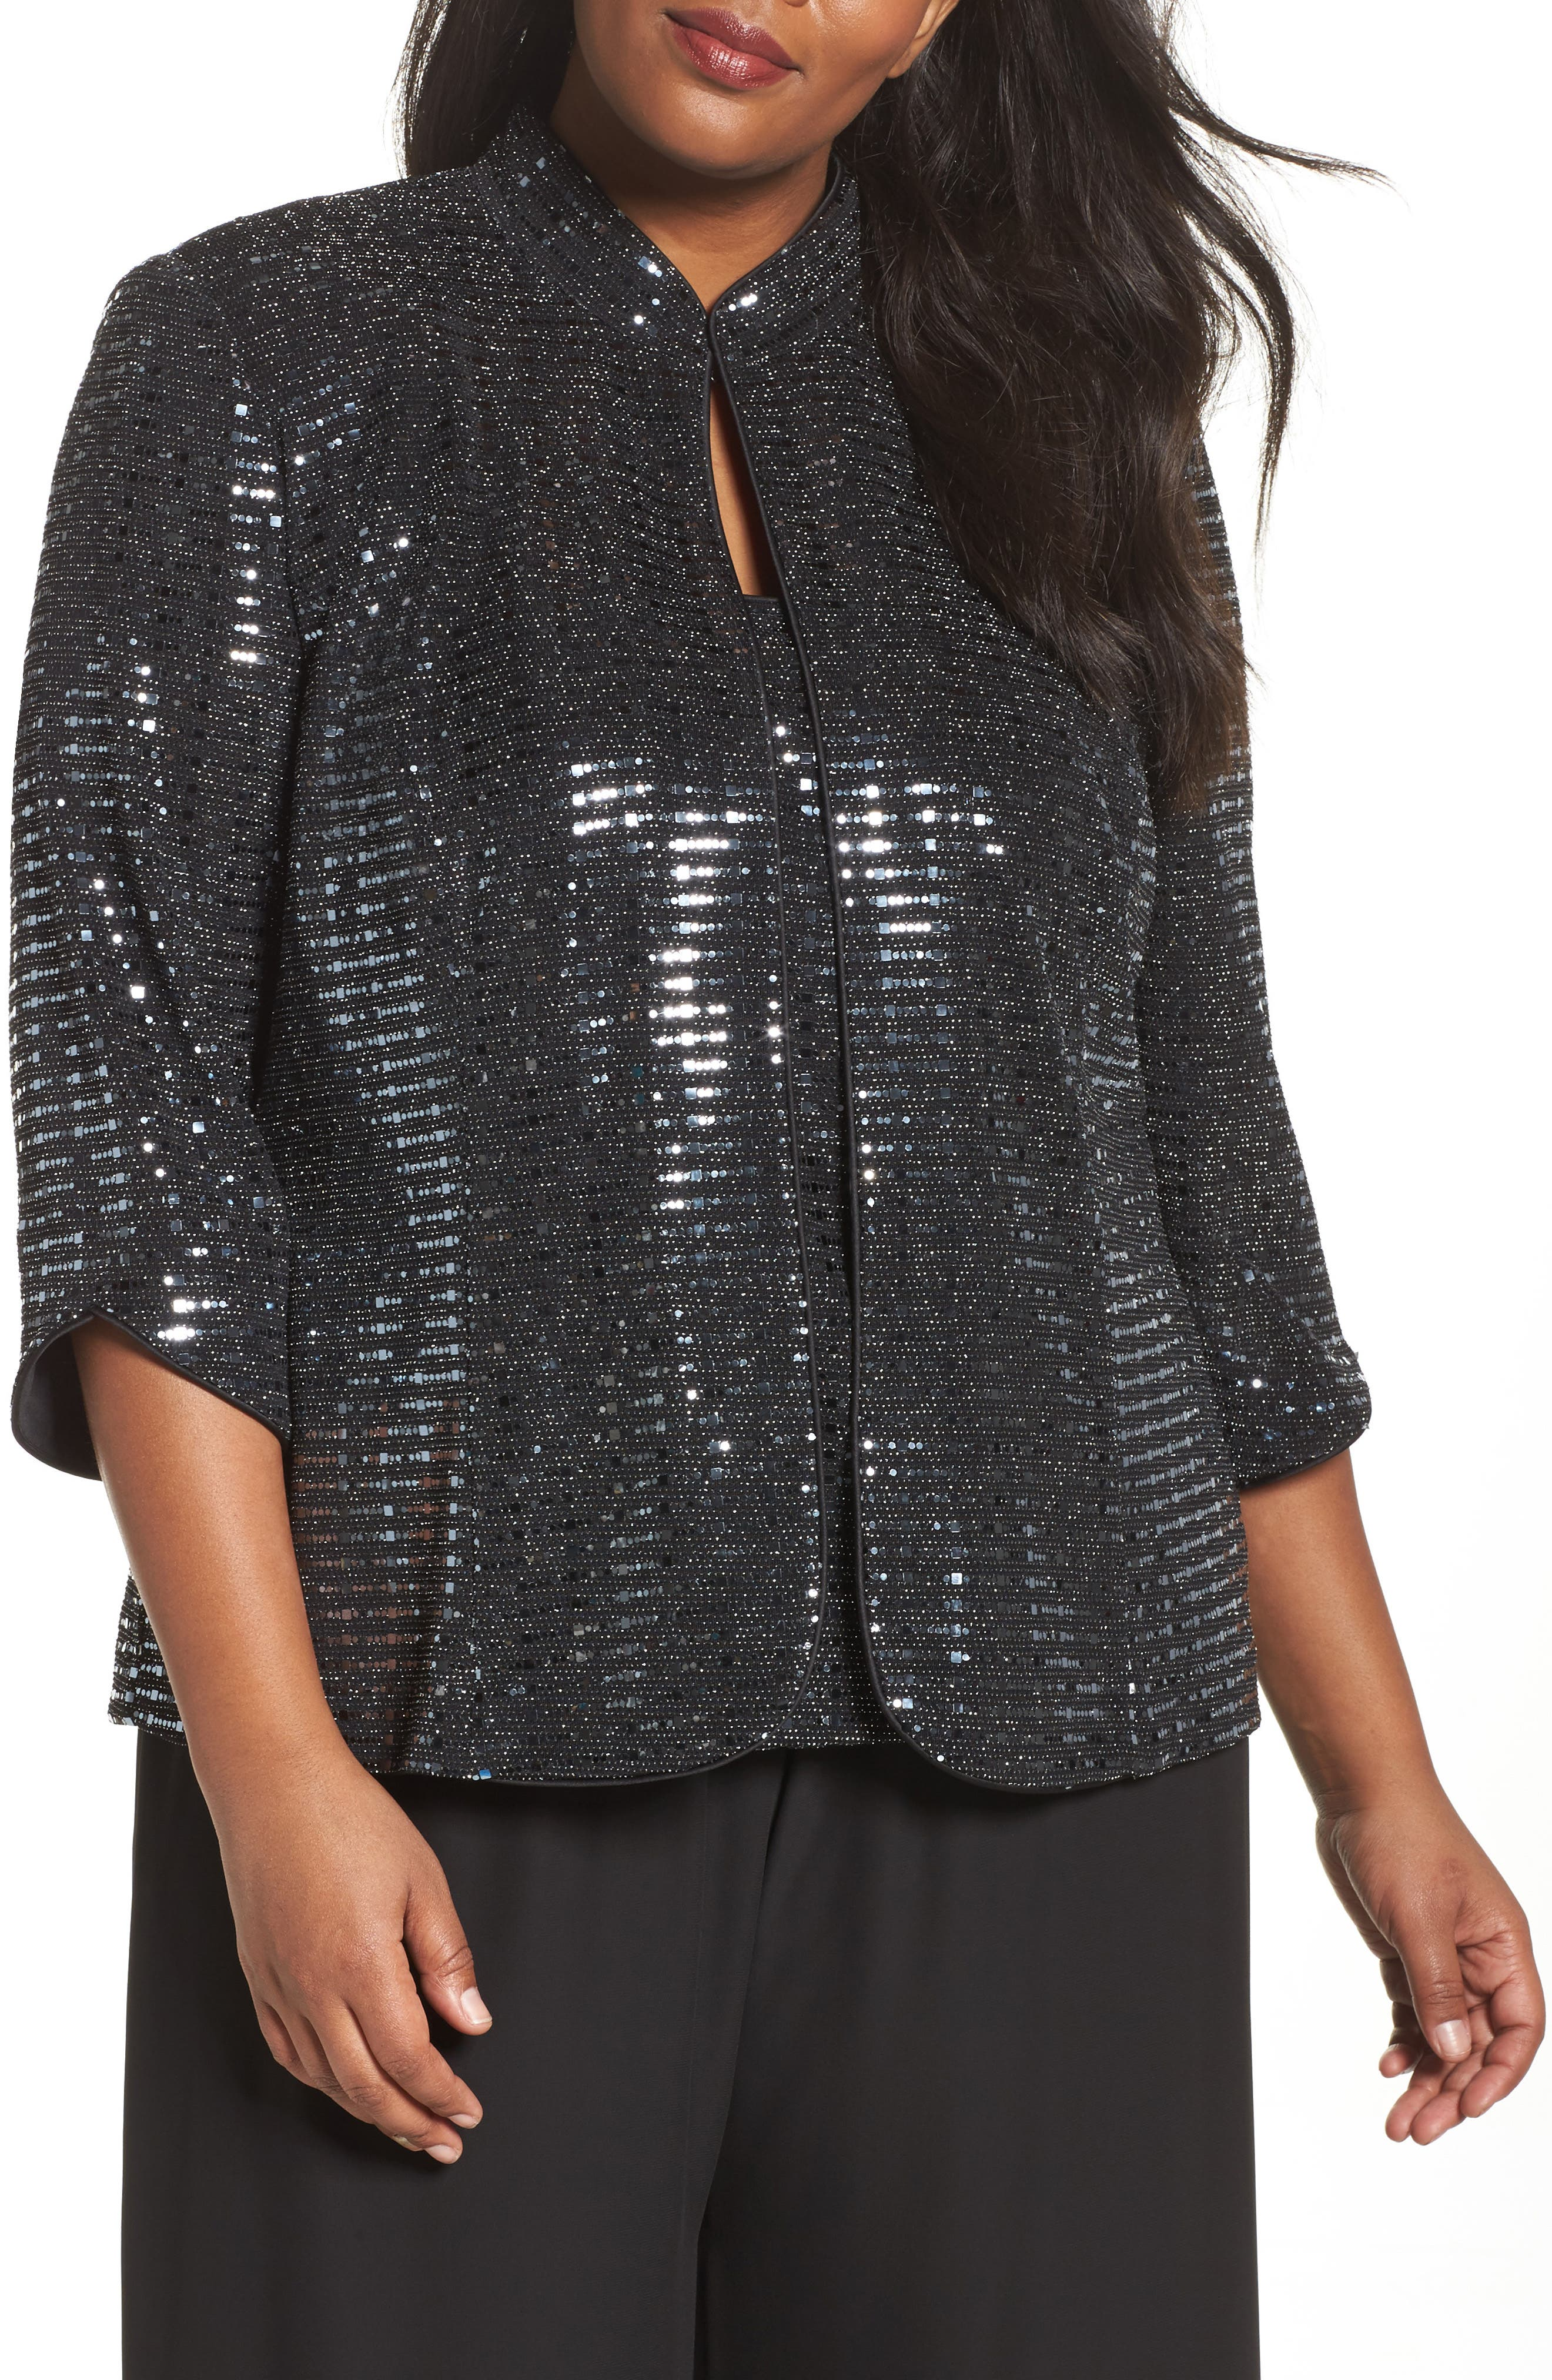 Main Image - Alex Evenings Sequin Mandarian Collar Twinset (Plus Size)